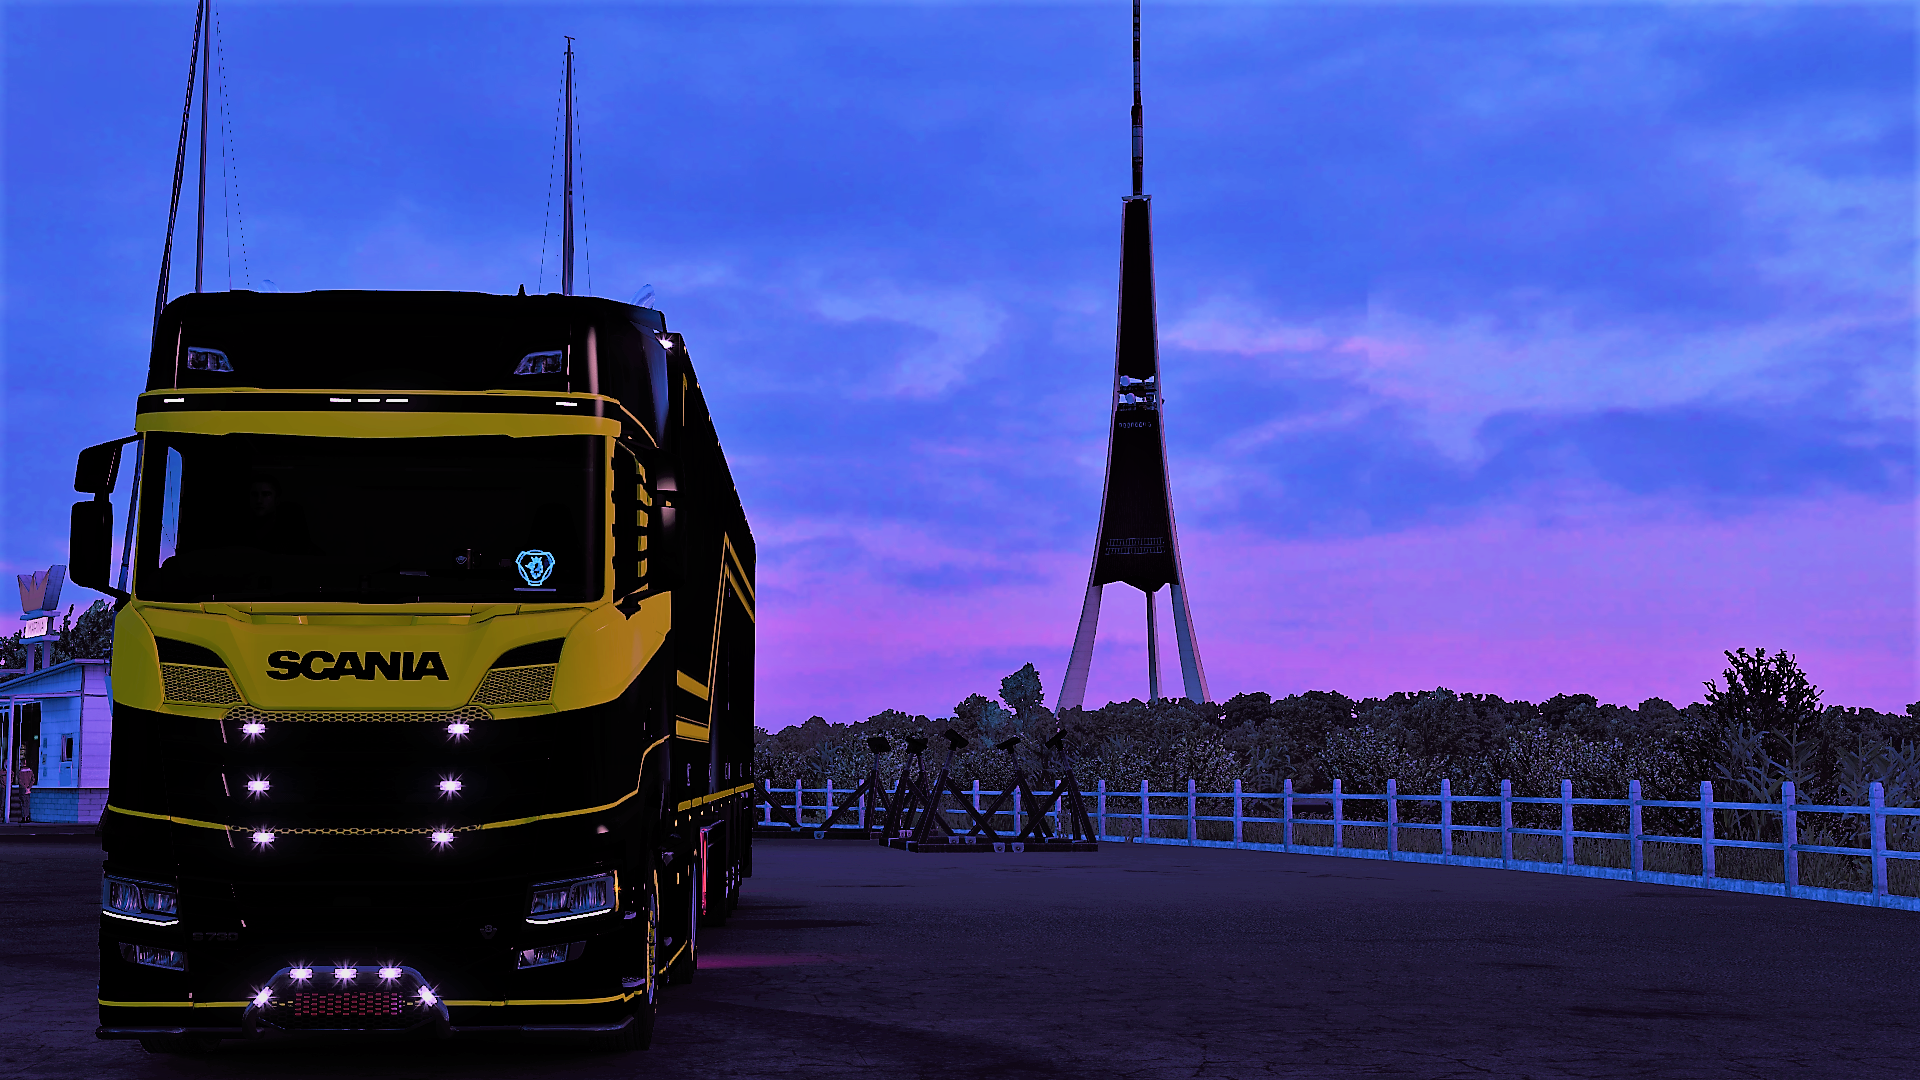 ets2_20190717_005746_00.png